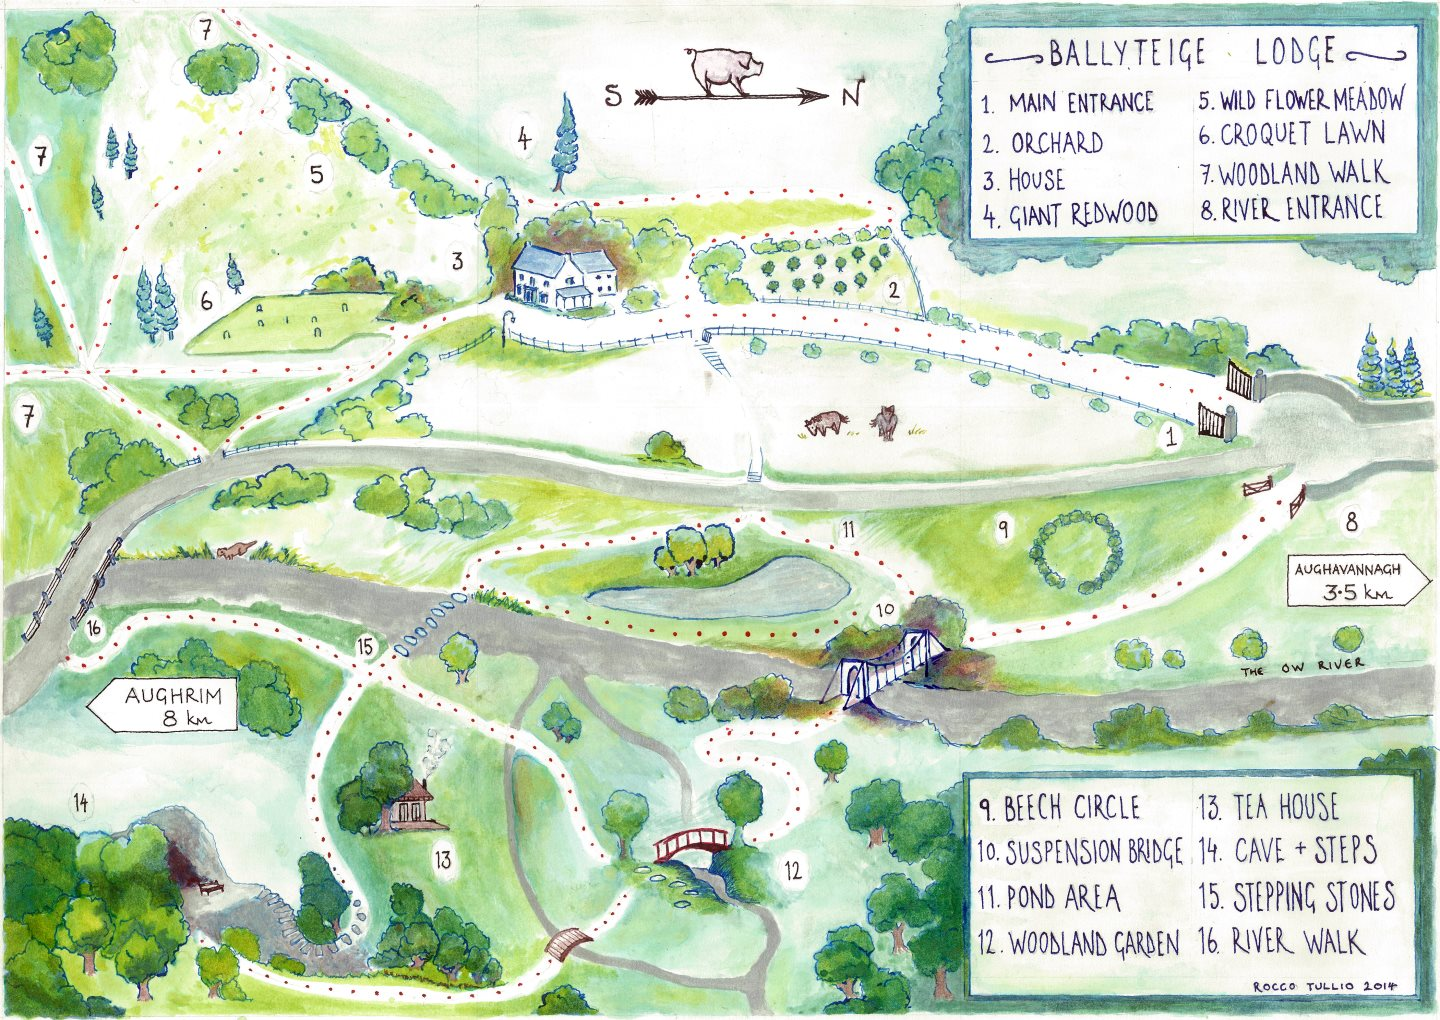 Map of Ballyteige Lodge and Woodland Garden